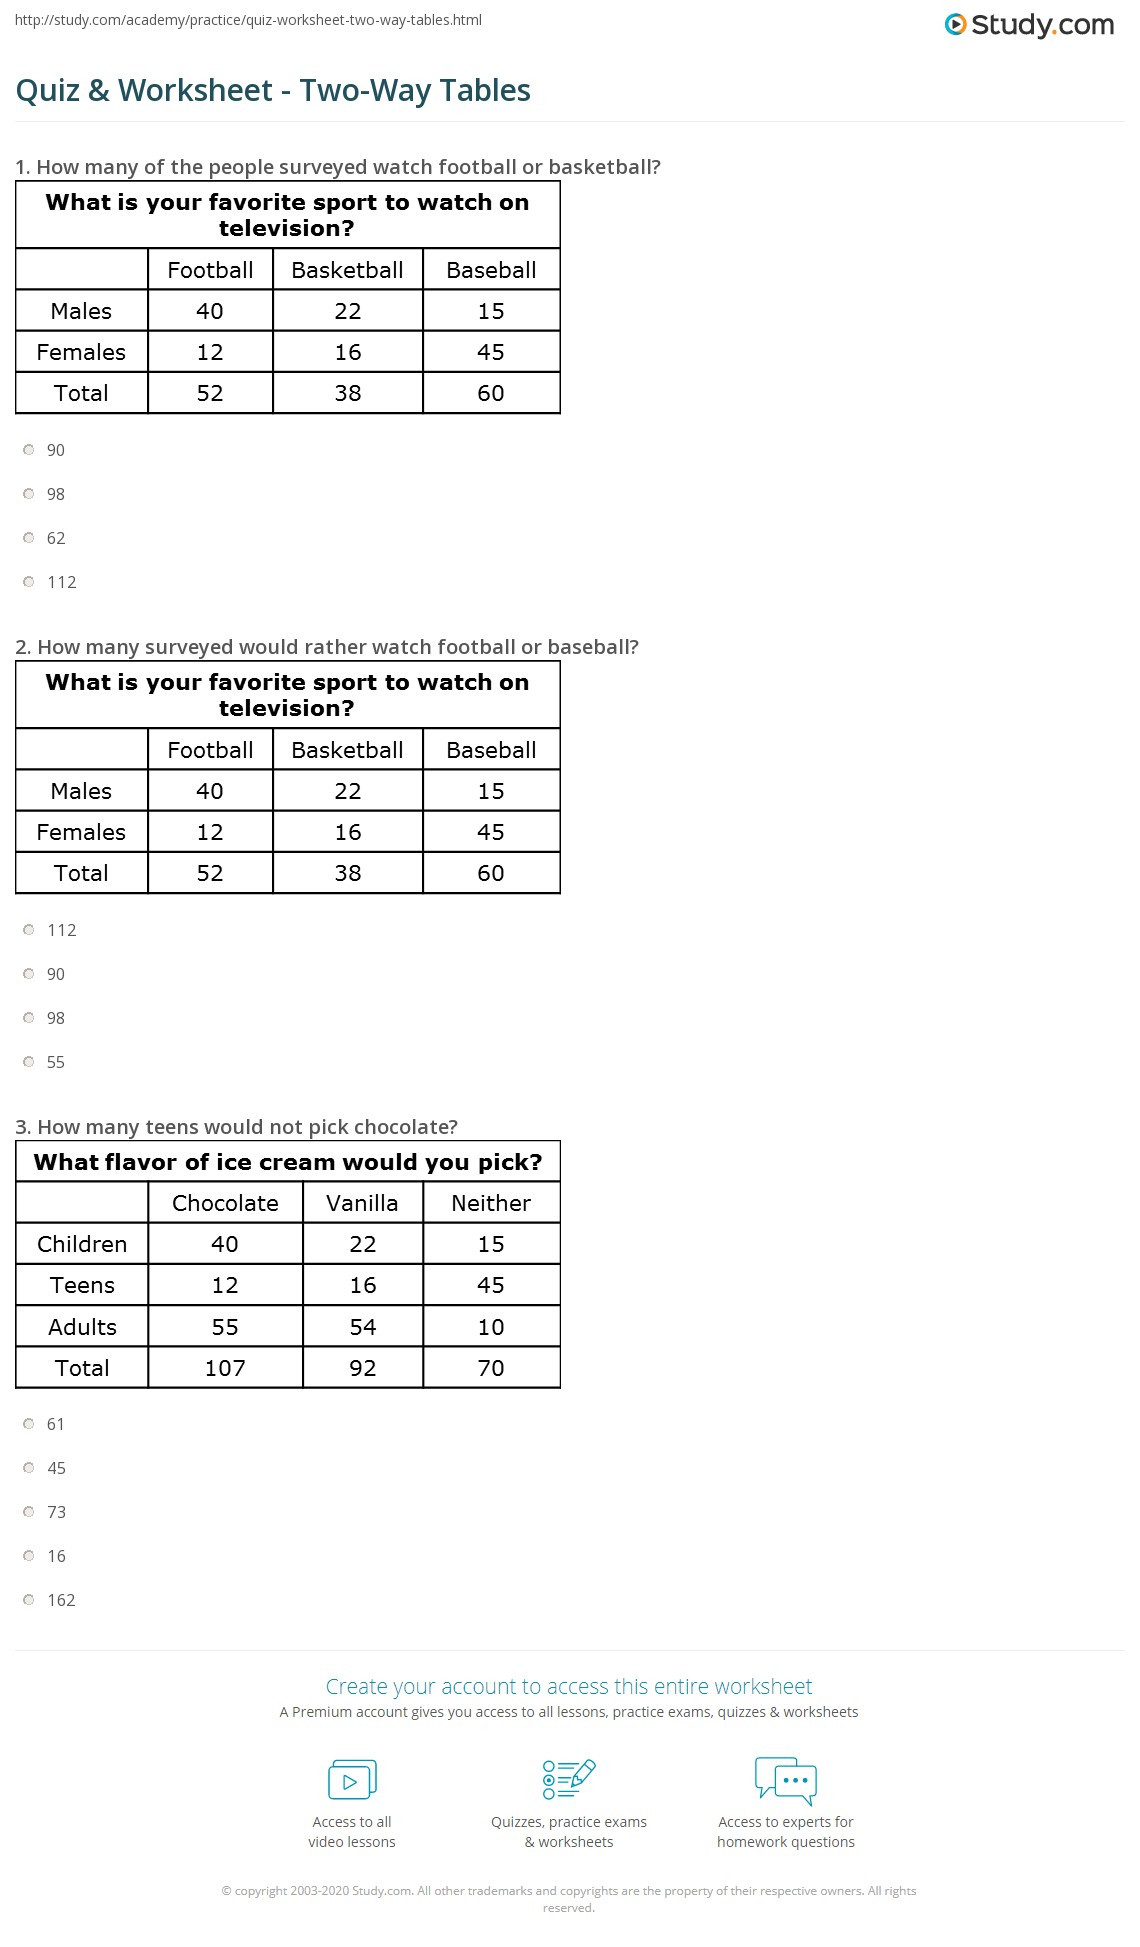 Quiz & Worksheet Two Way Tables